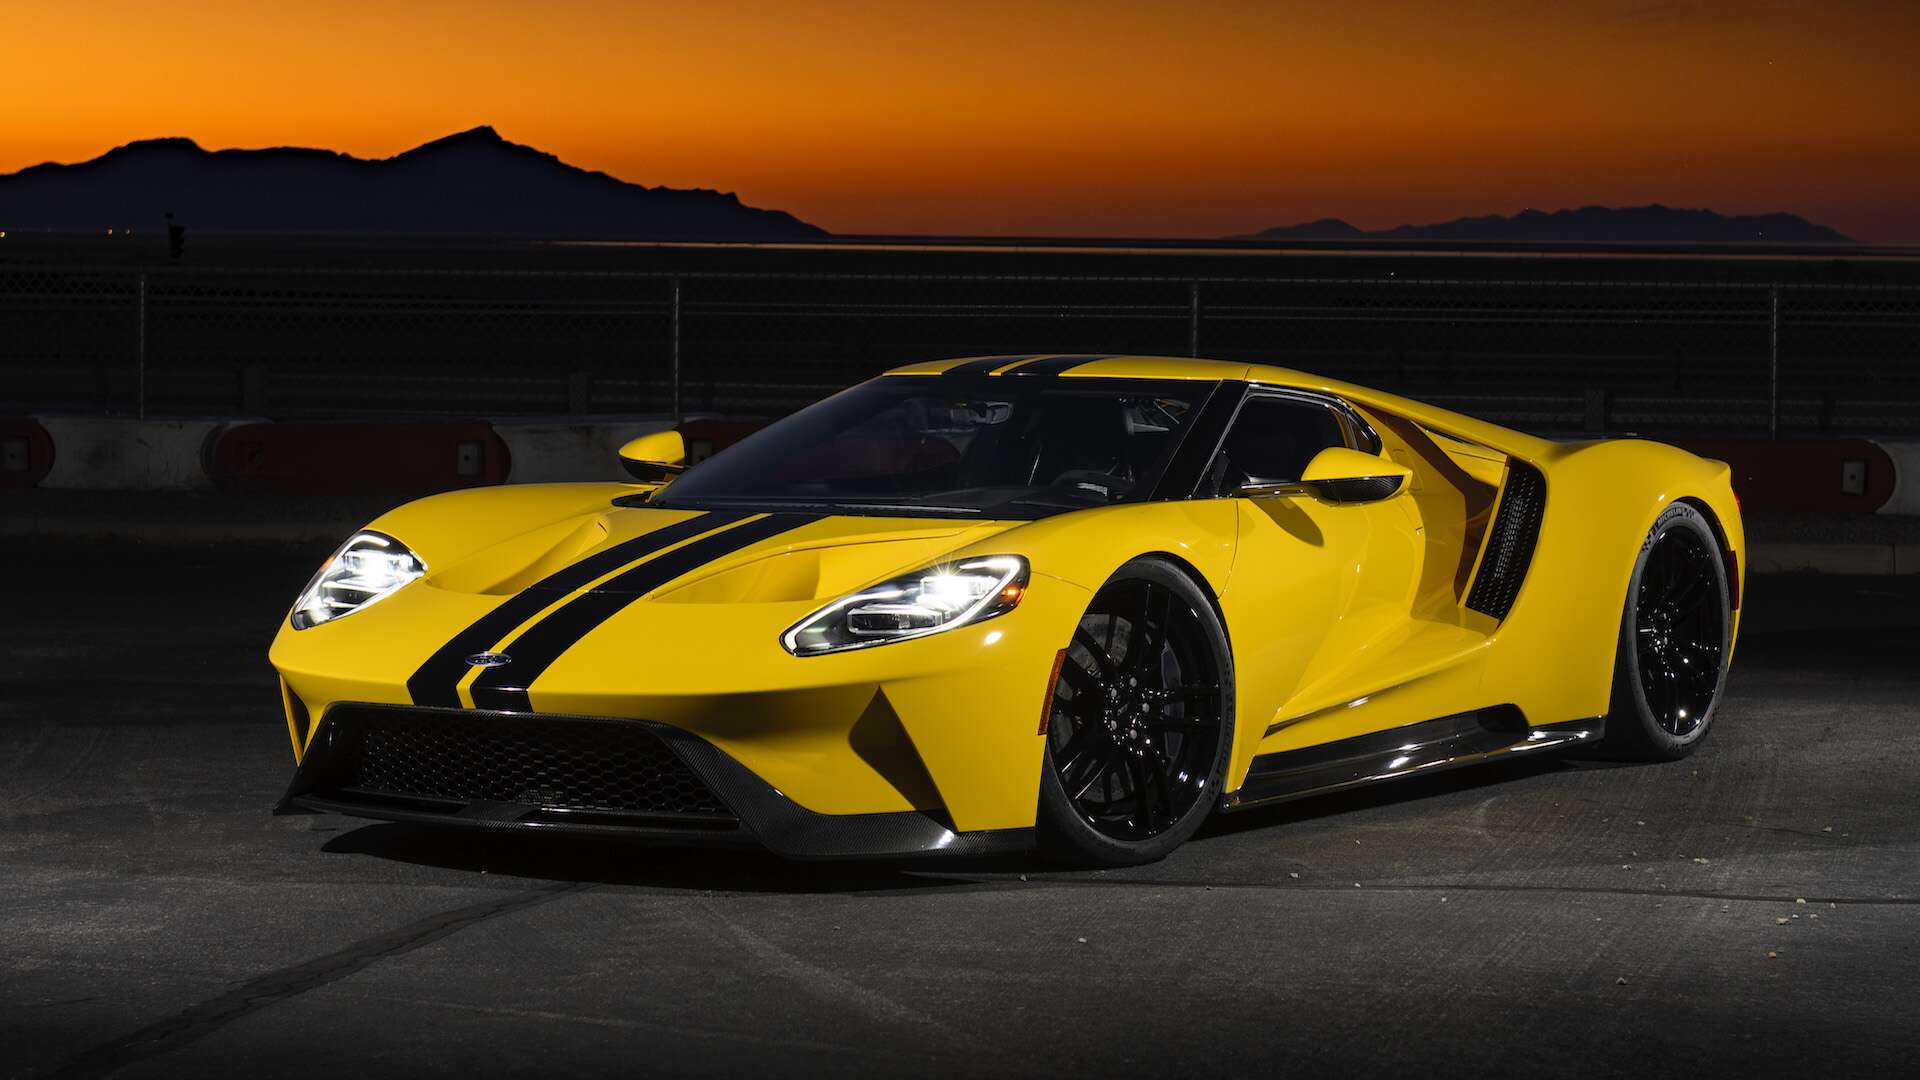 4. Ford GT: 216 MPH